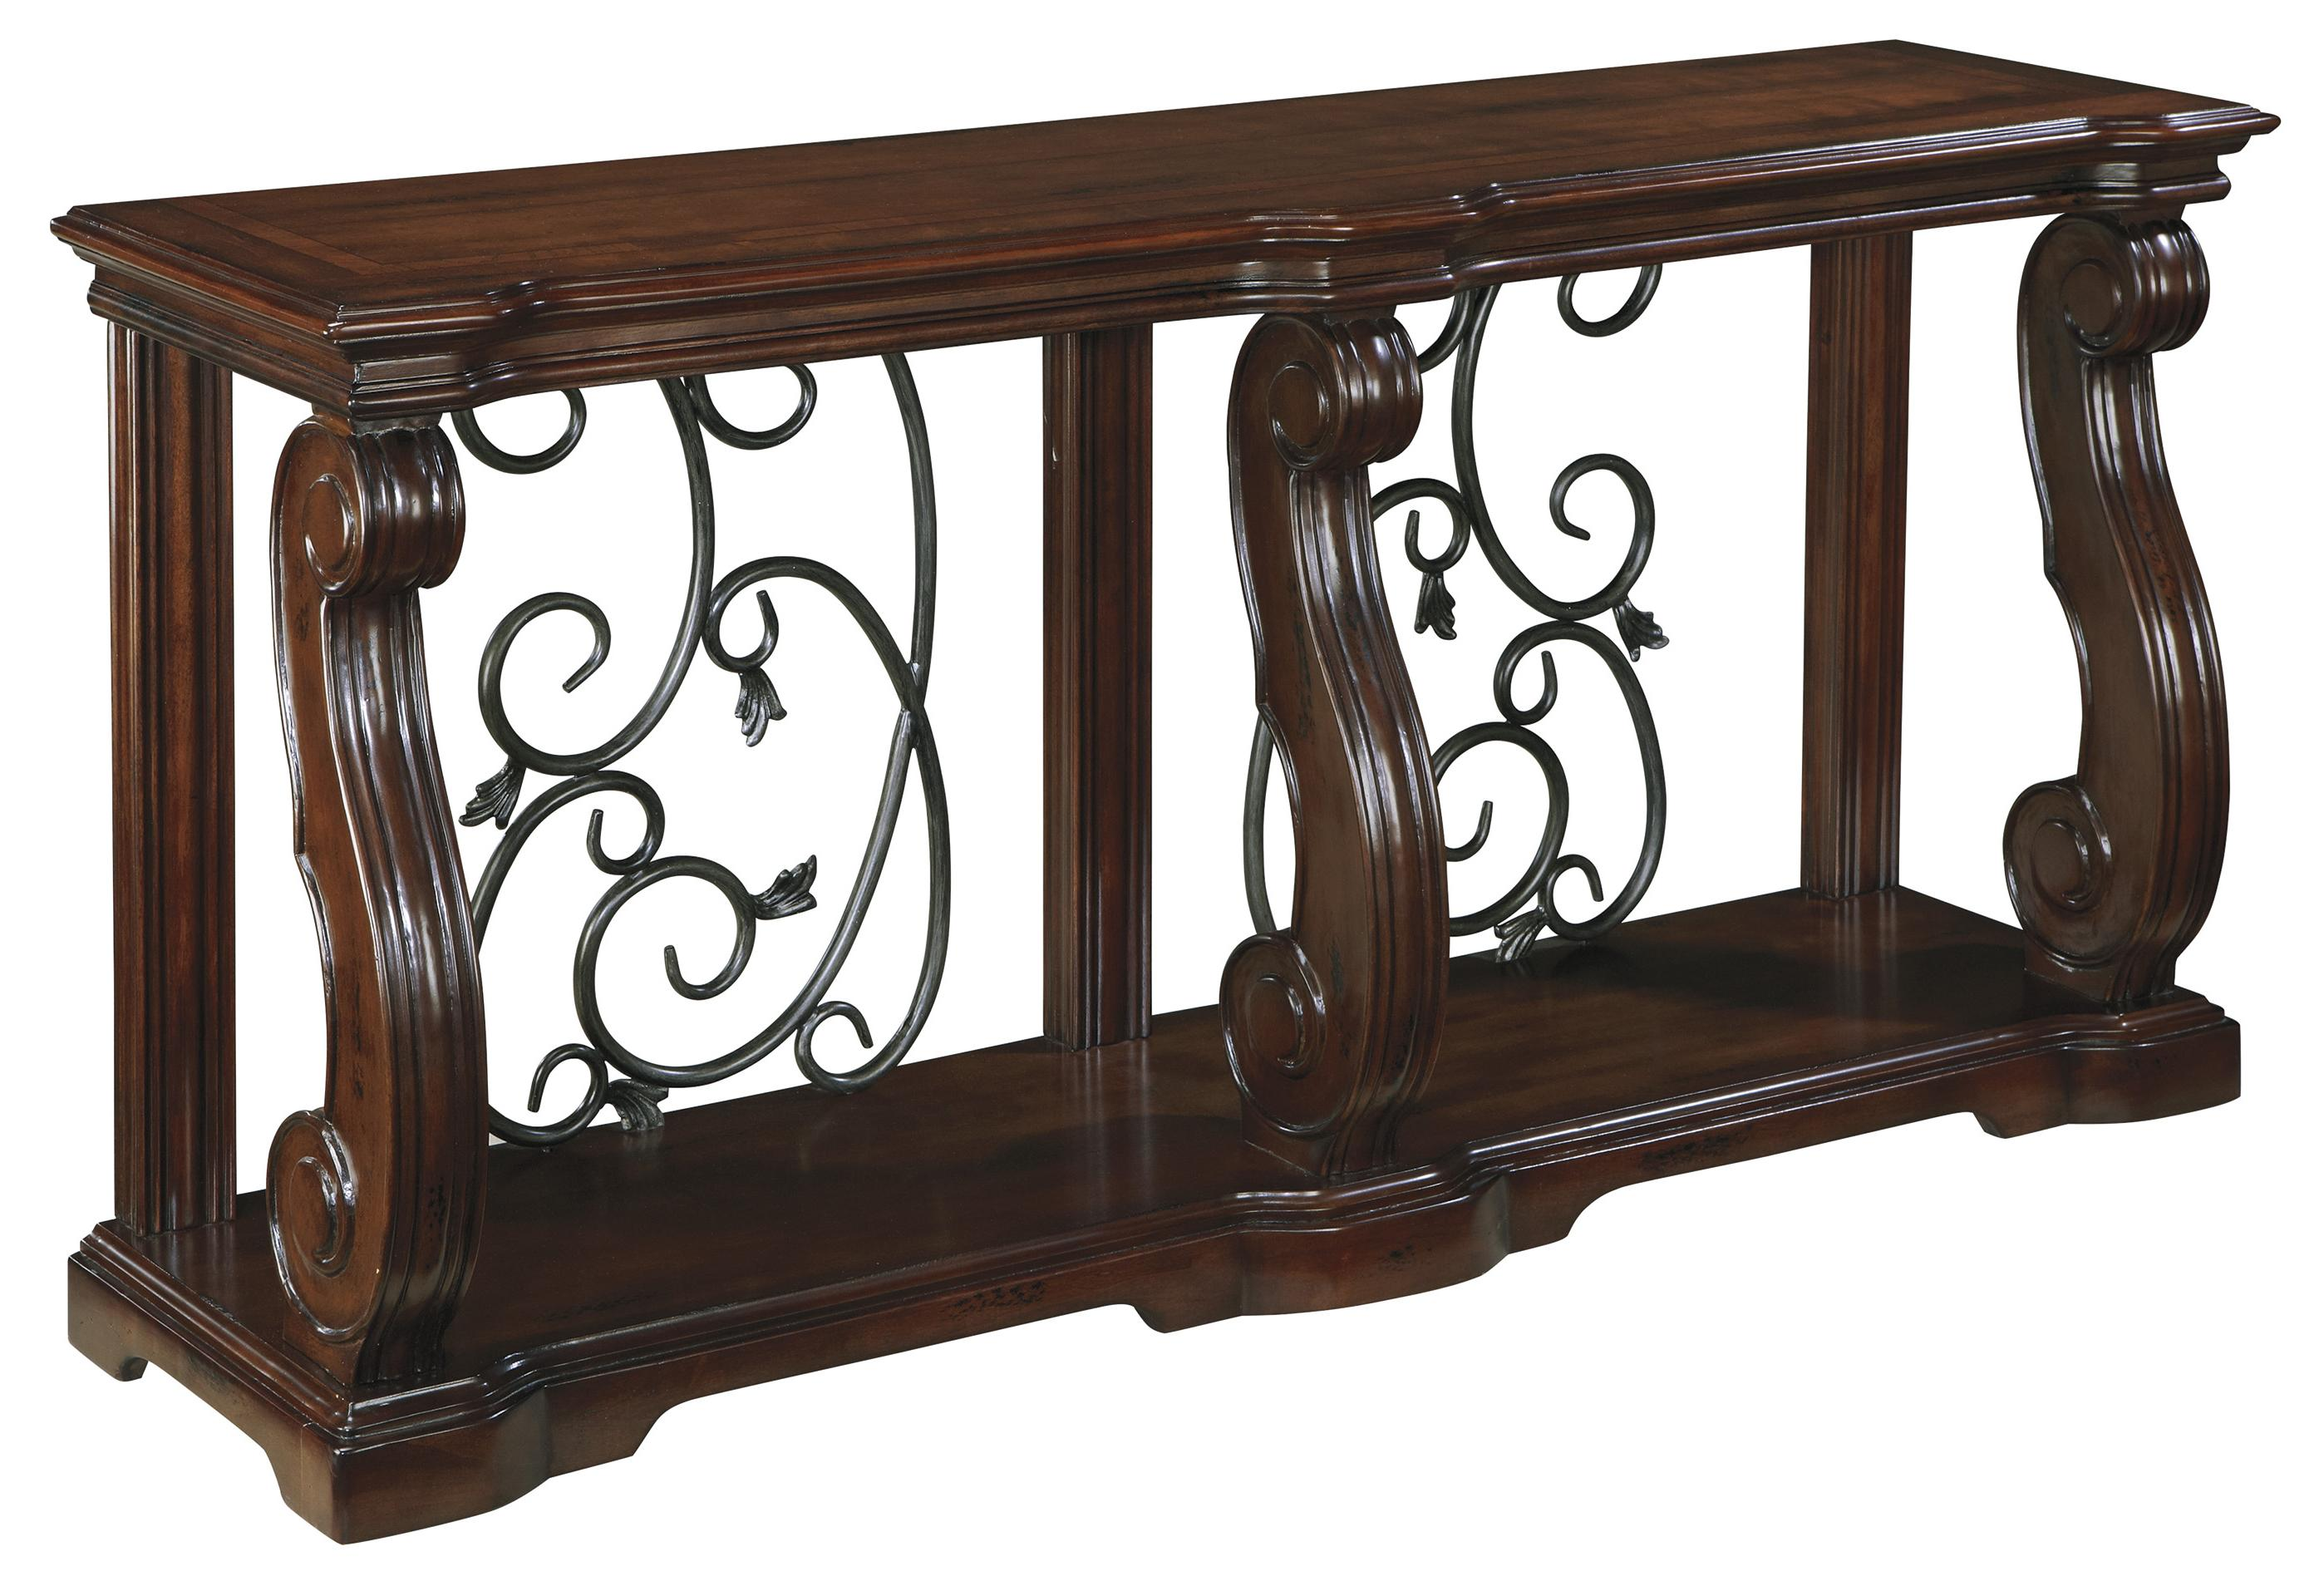 Signature Design by Ashley Alymere Sofa Table - Item Number: T869-4